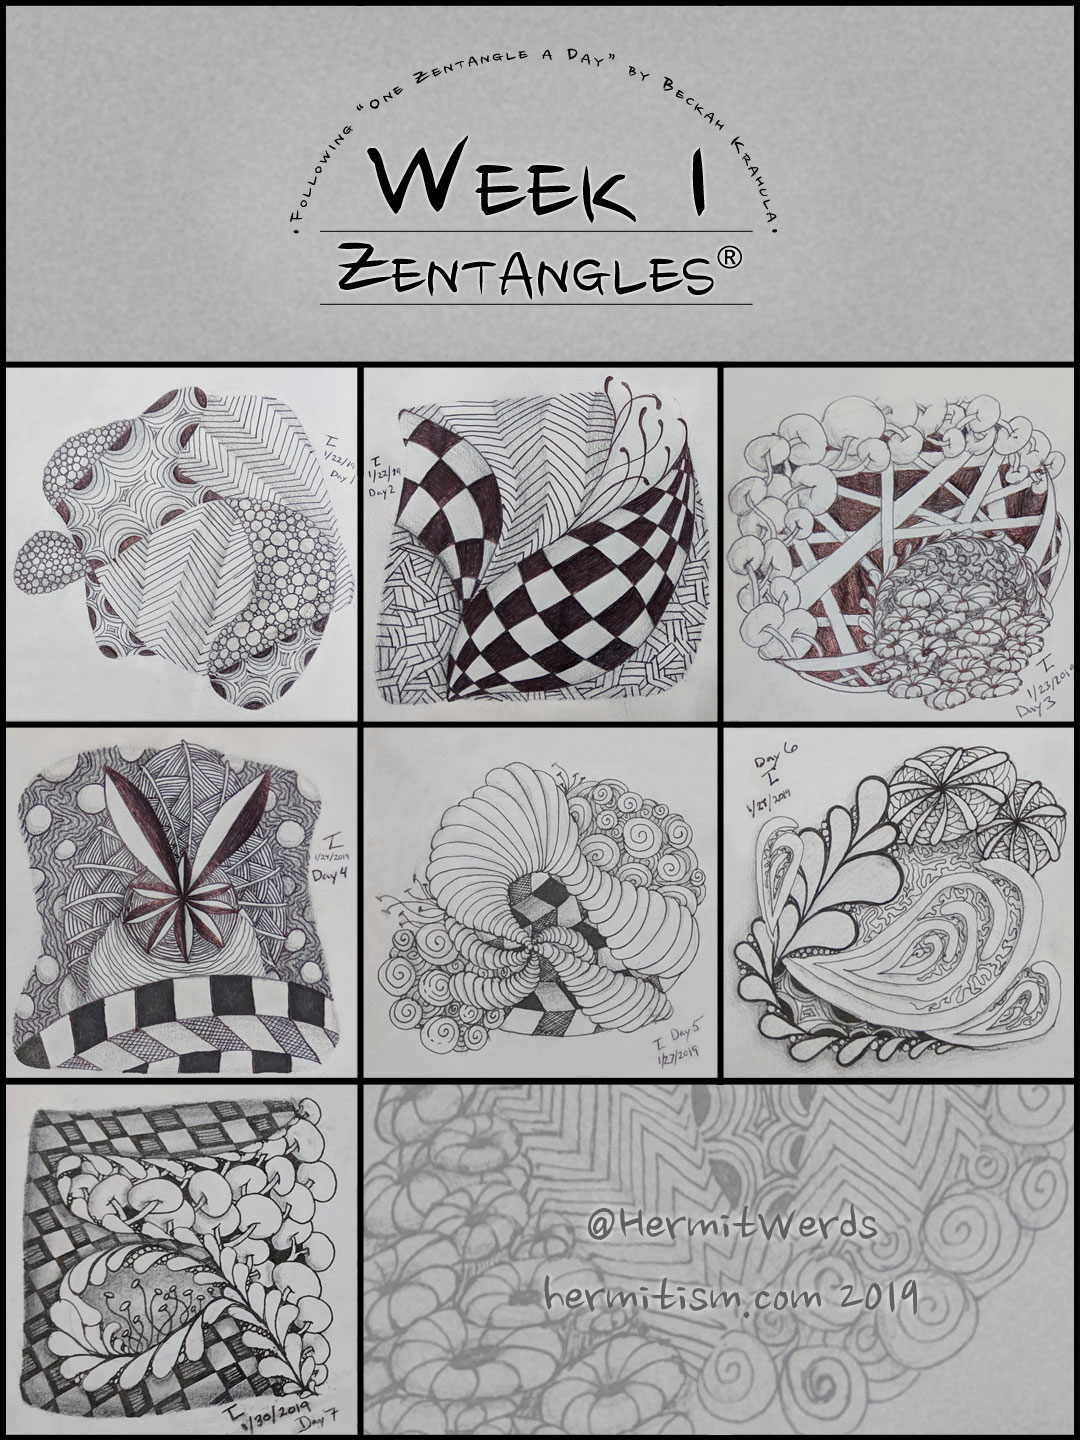 Week 1 Zentangles by Hermit Werds for Pinterest